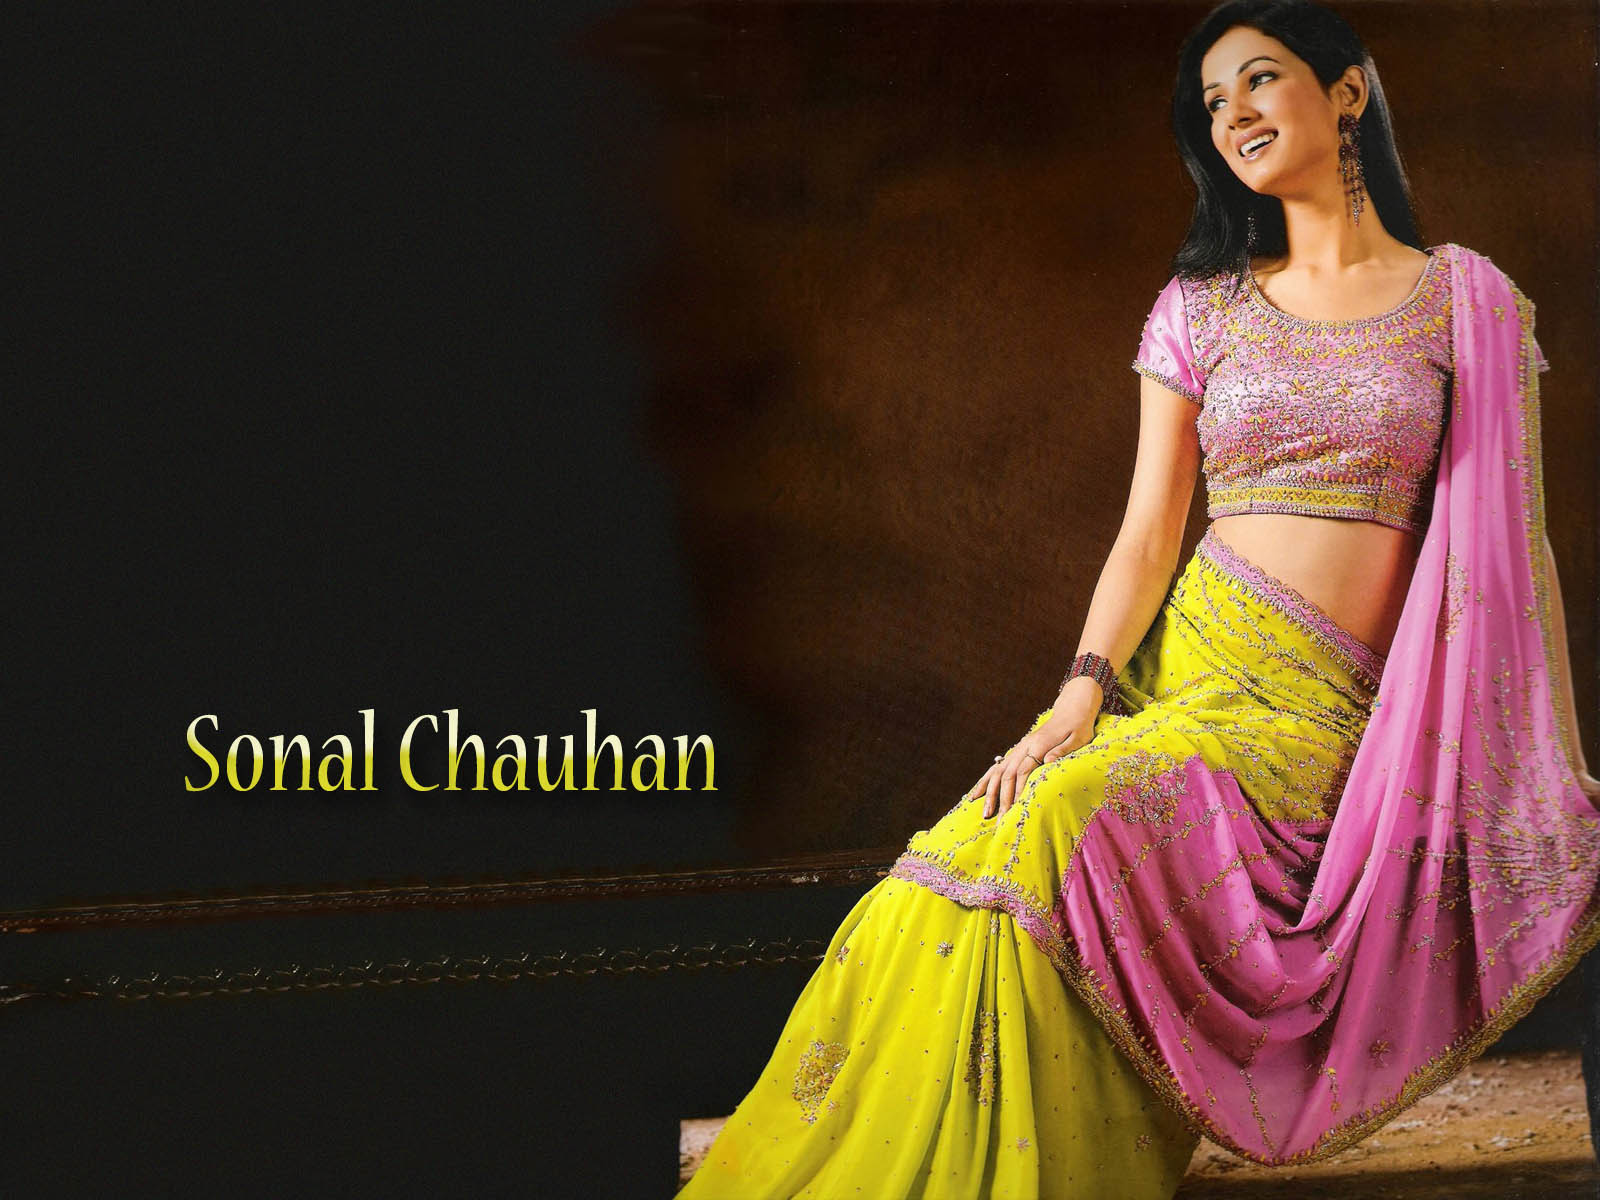 Sonal Chauhan Looking Nice In Saree Desicommentscom